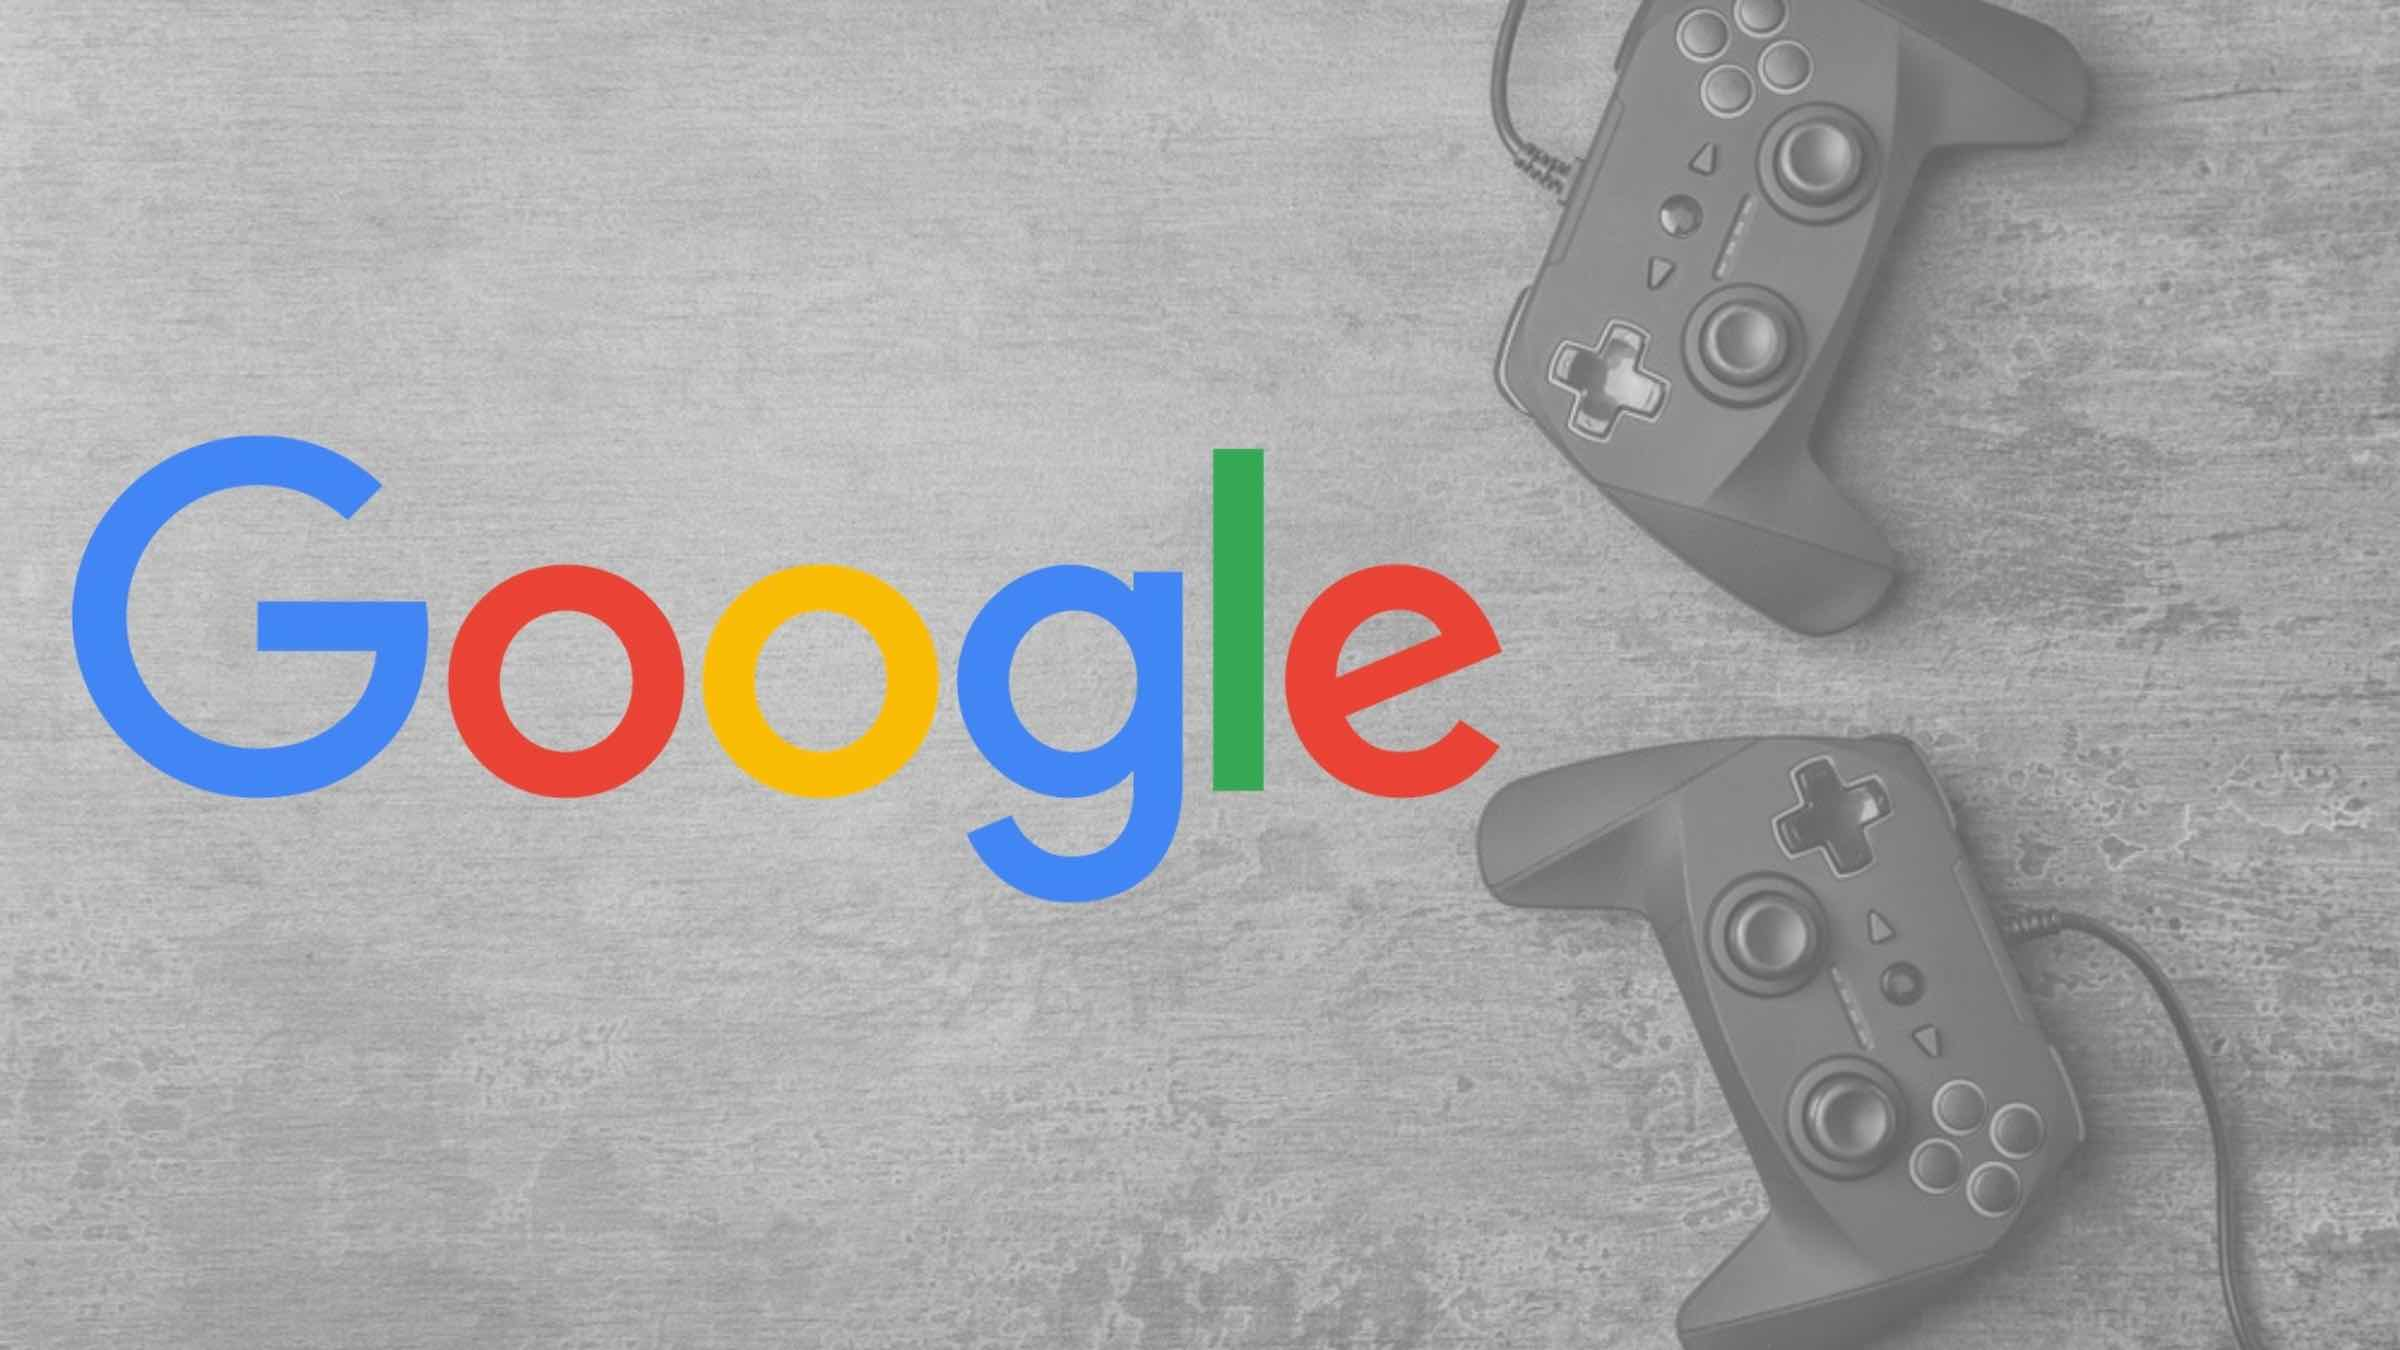 If you're bored out of your mind playing solitaire online, here's the best games on Google to entertain you during quarantine.